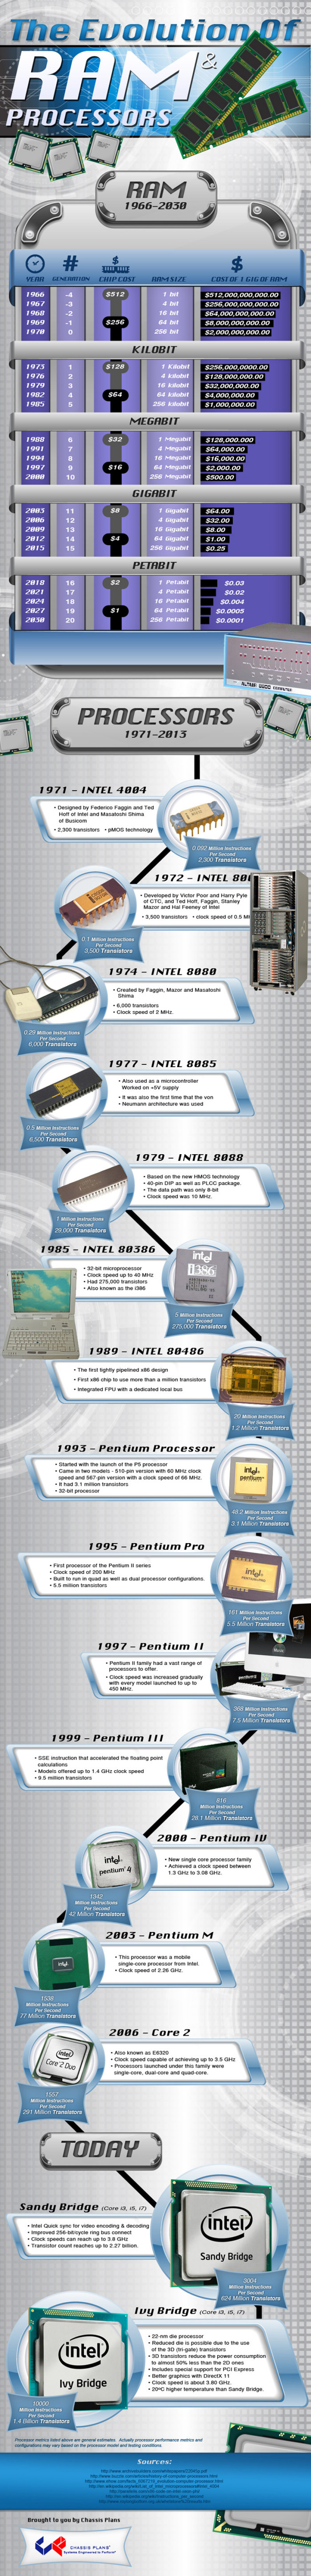 The Evolution of Ram & Processors